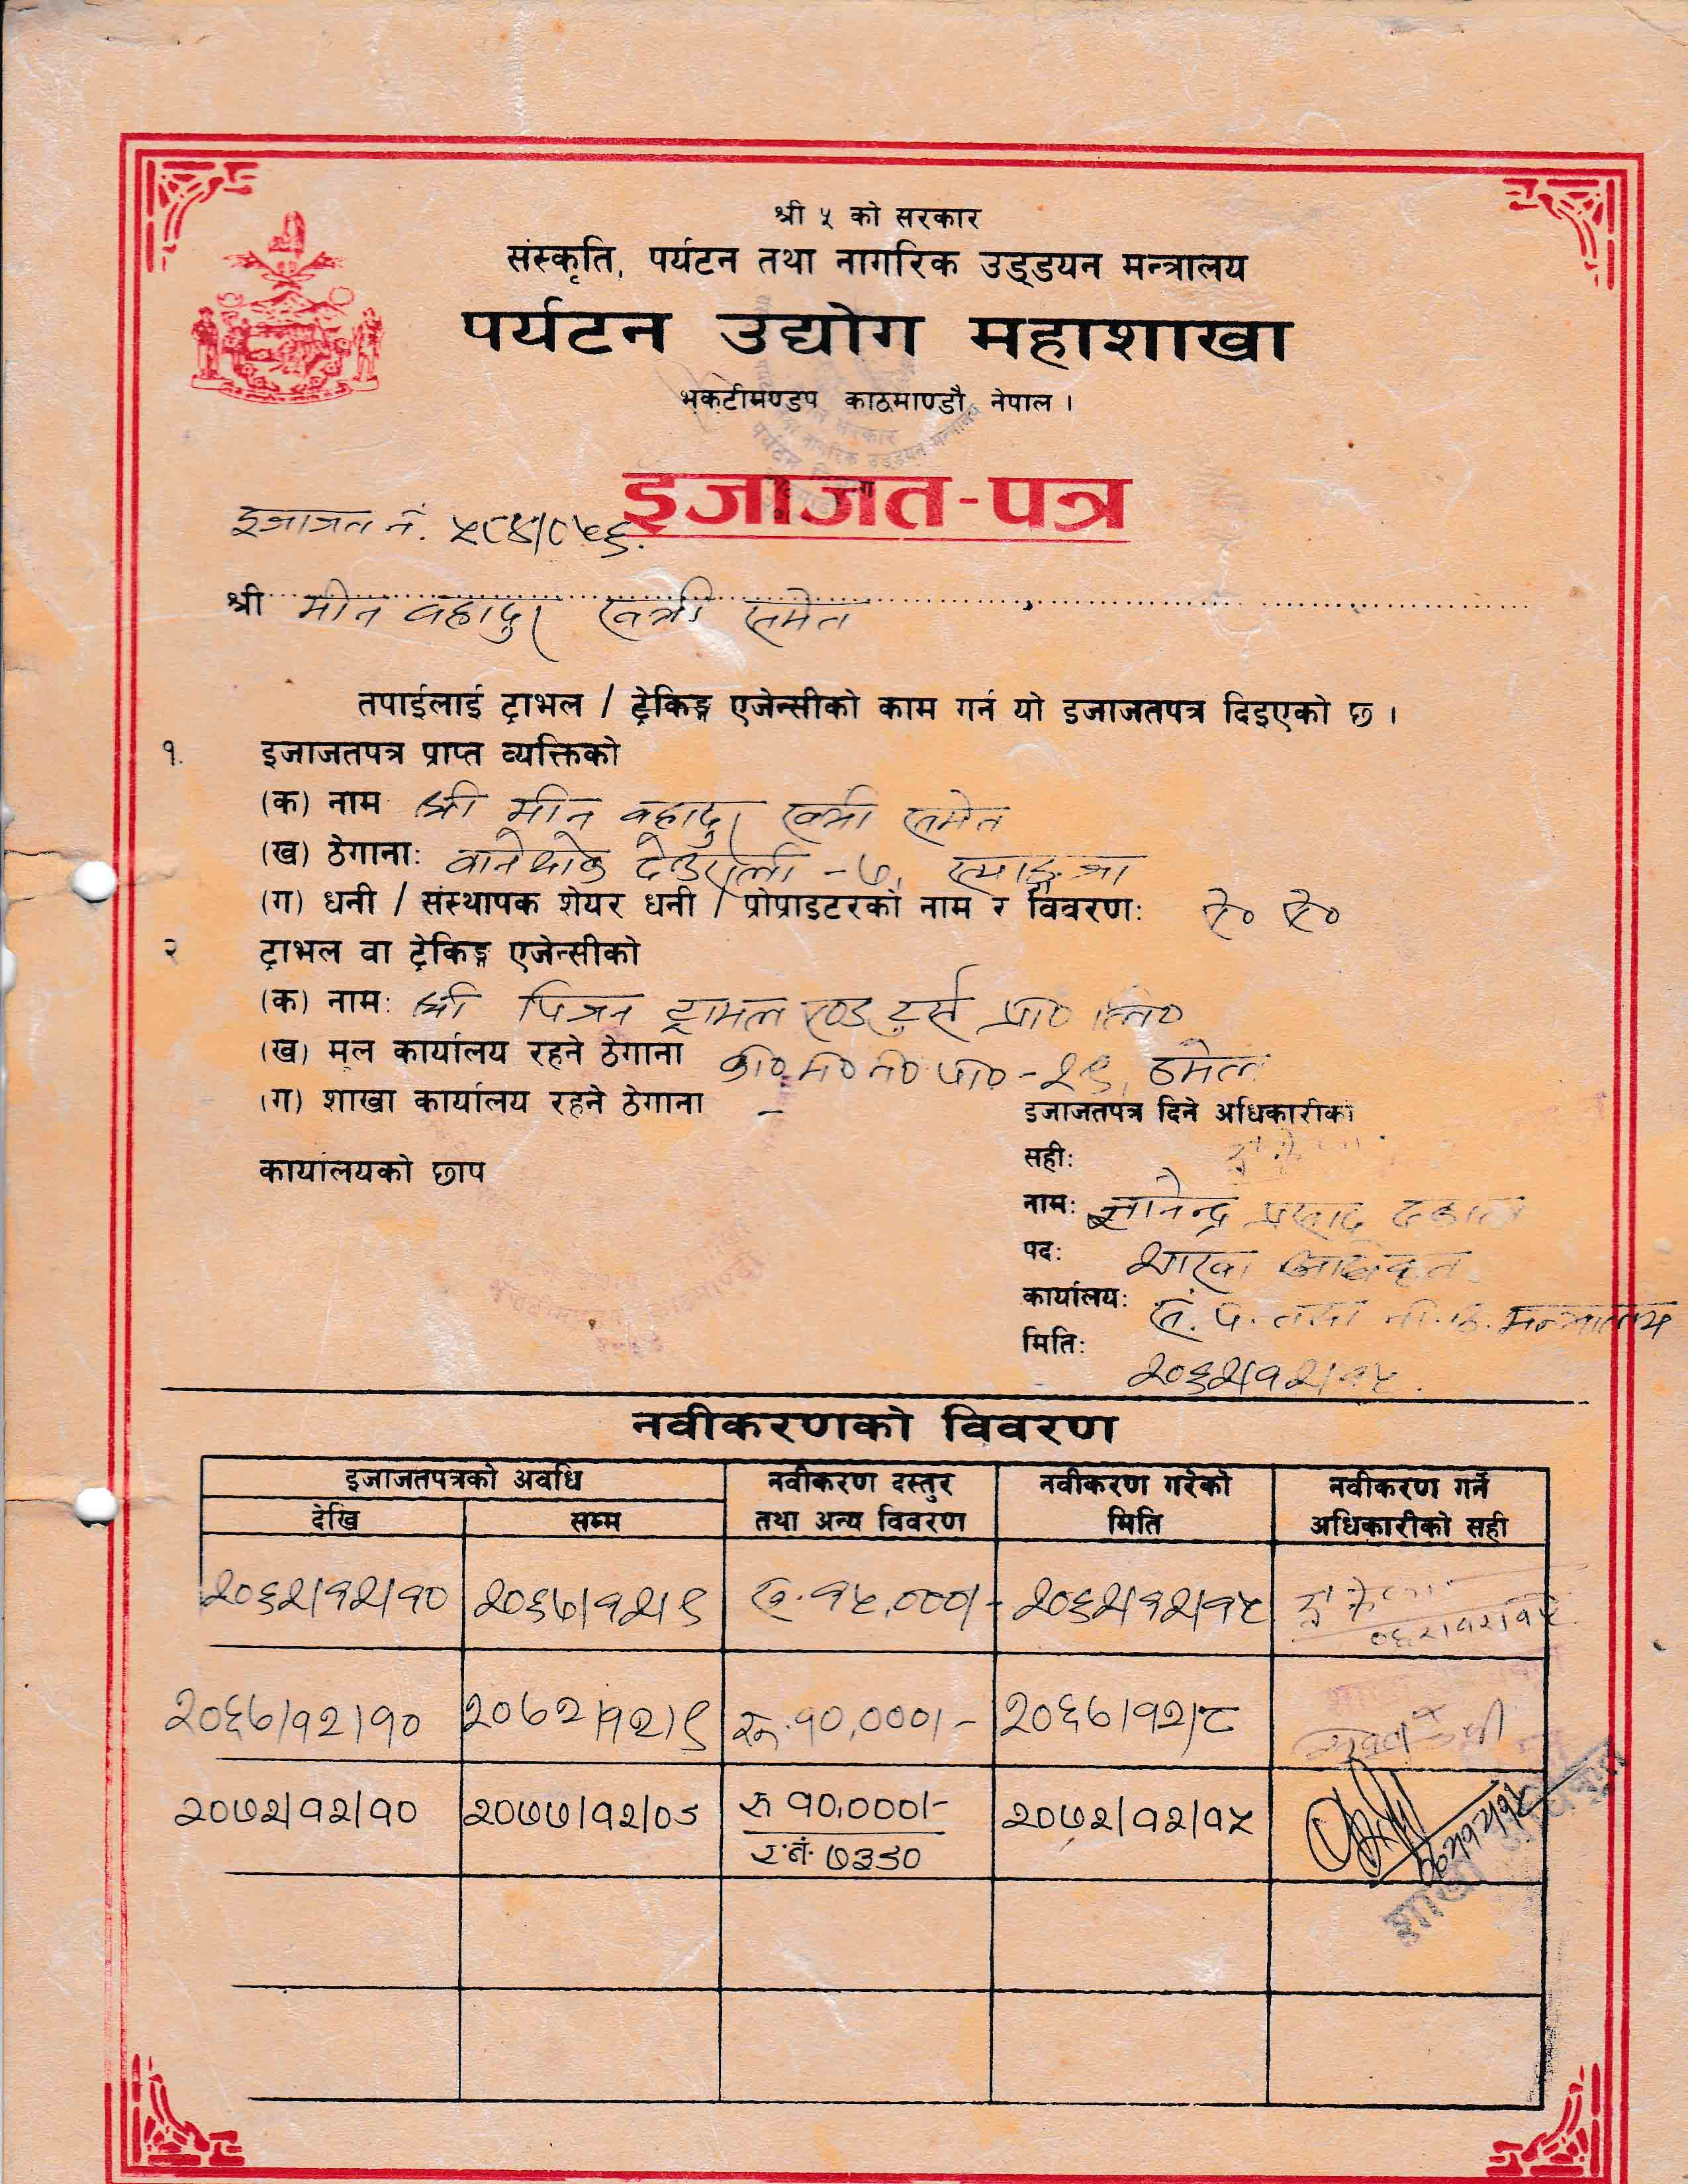 Certificate from Department of Tourism for Travel & Tour Operation